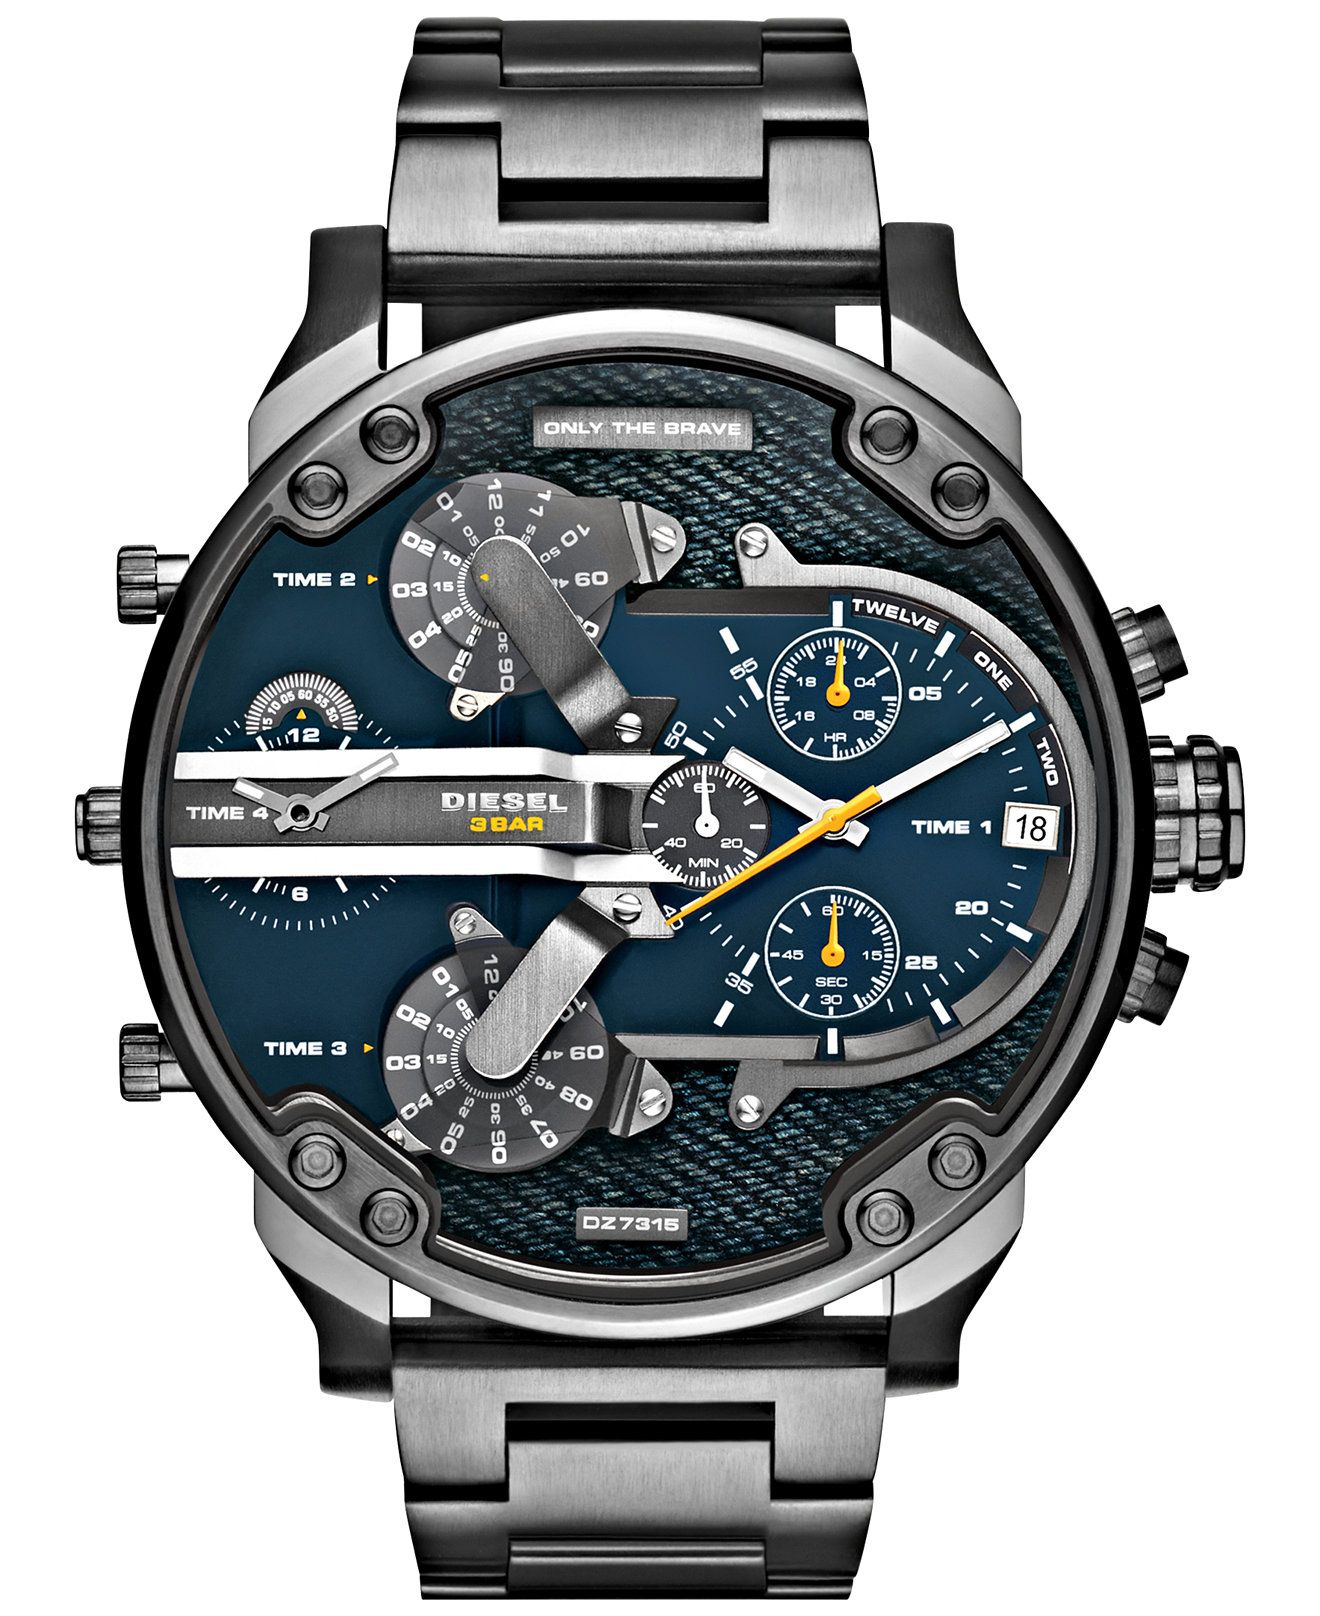 9faab93b91625 Diesel Men's Mr. Daddy 2.0 Gunmetal Ion-Plated Stainless Steel Bracelet  Watch 57mm DZ7331 - Watches - Jewelry & Watches - Macy's